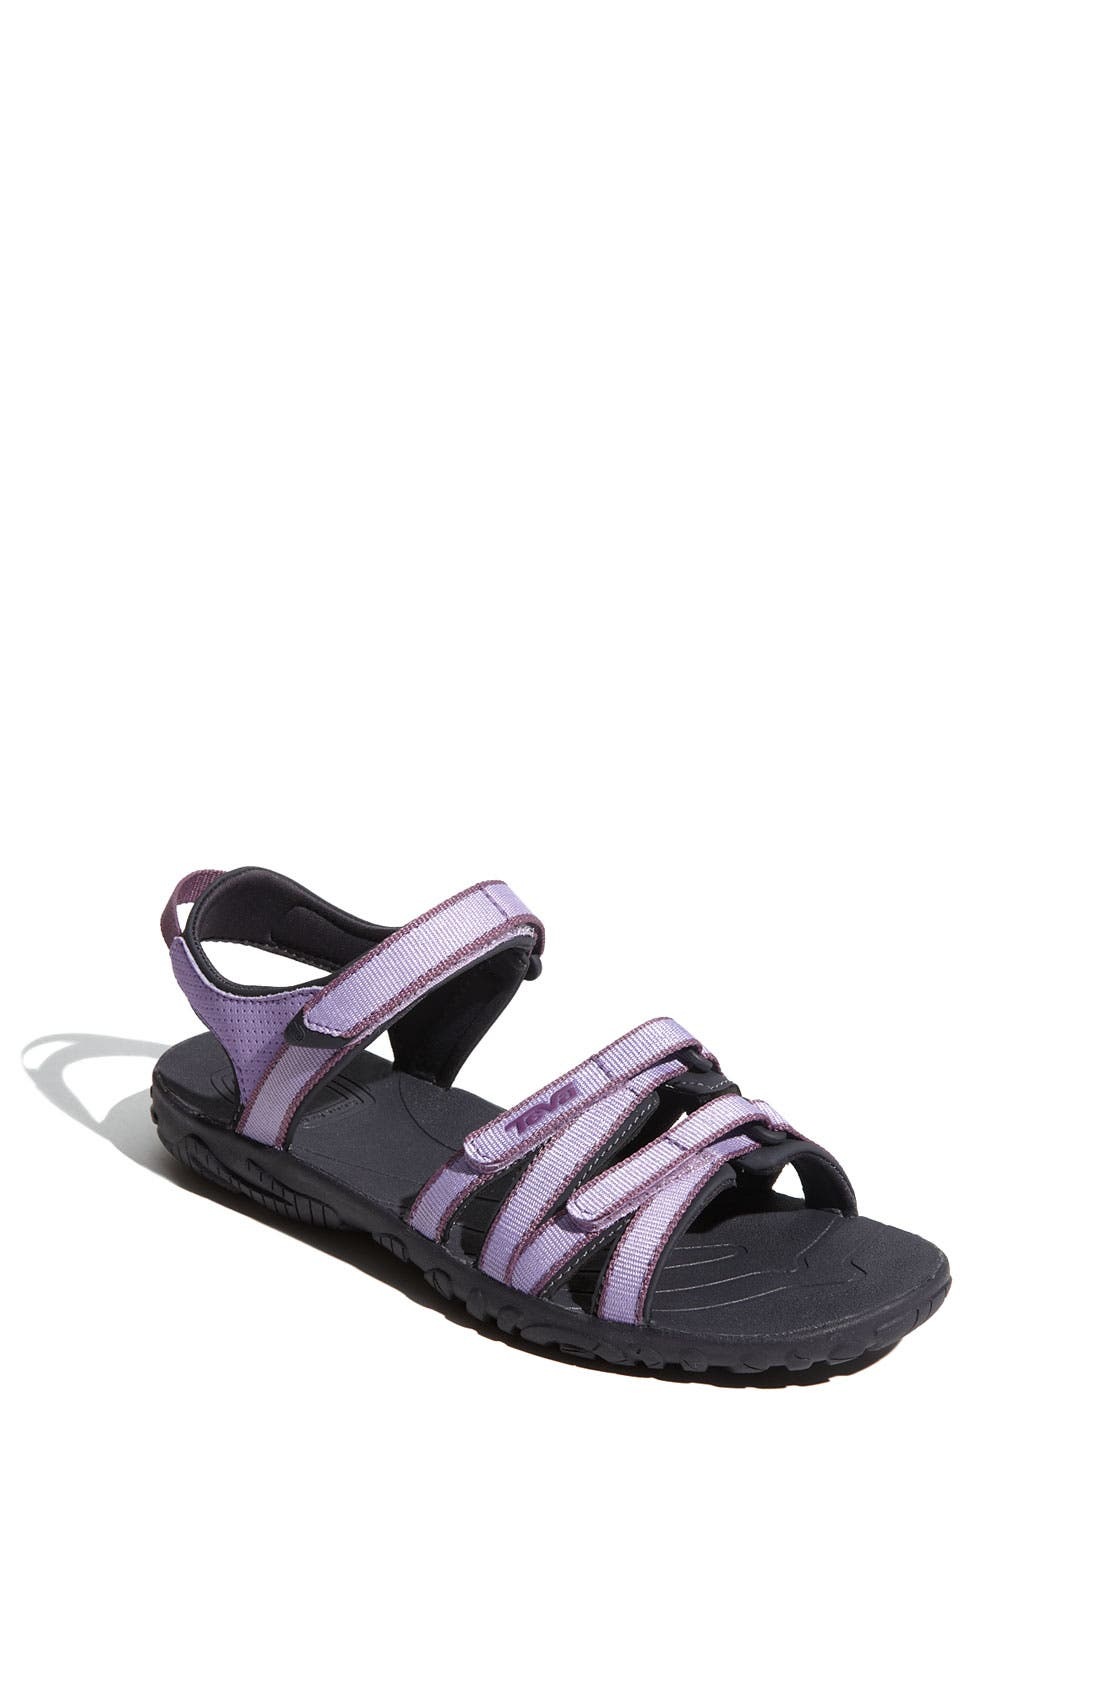 Main Image - Teva 'Tirra' Sandal (Toddler, Little Kid & Big Kid)